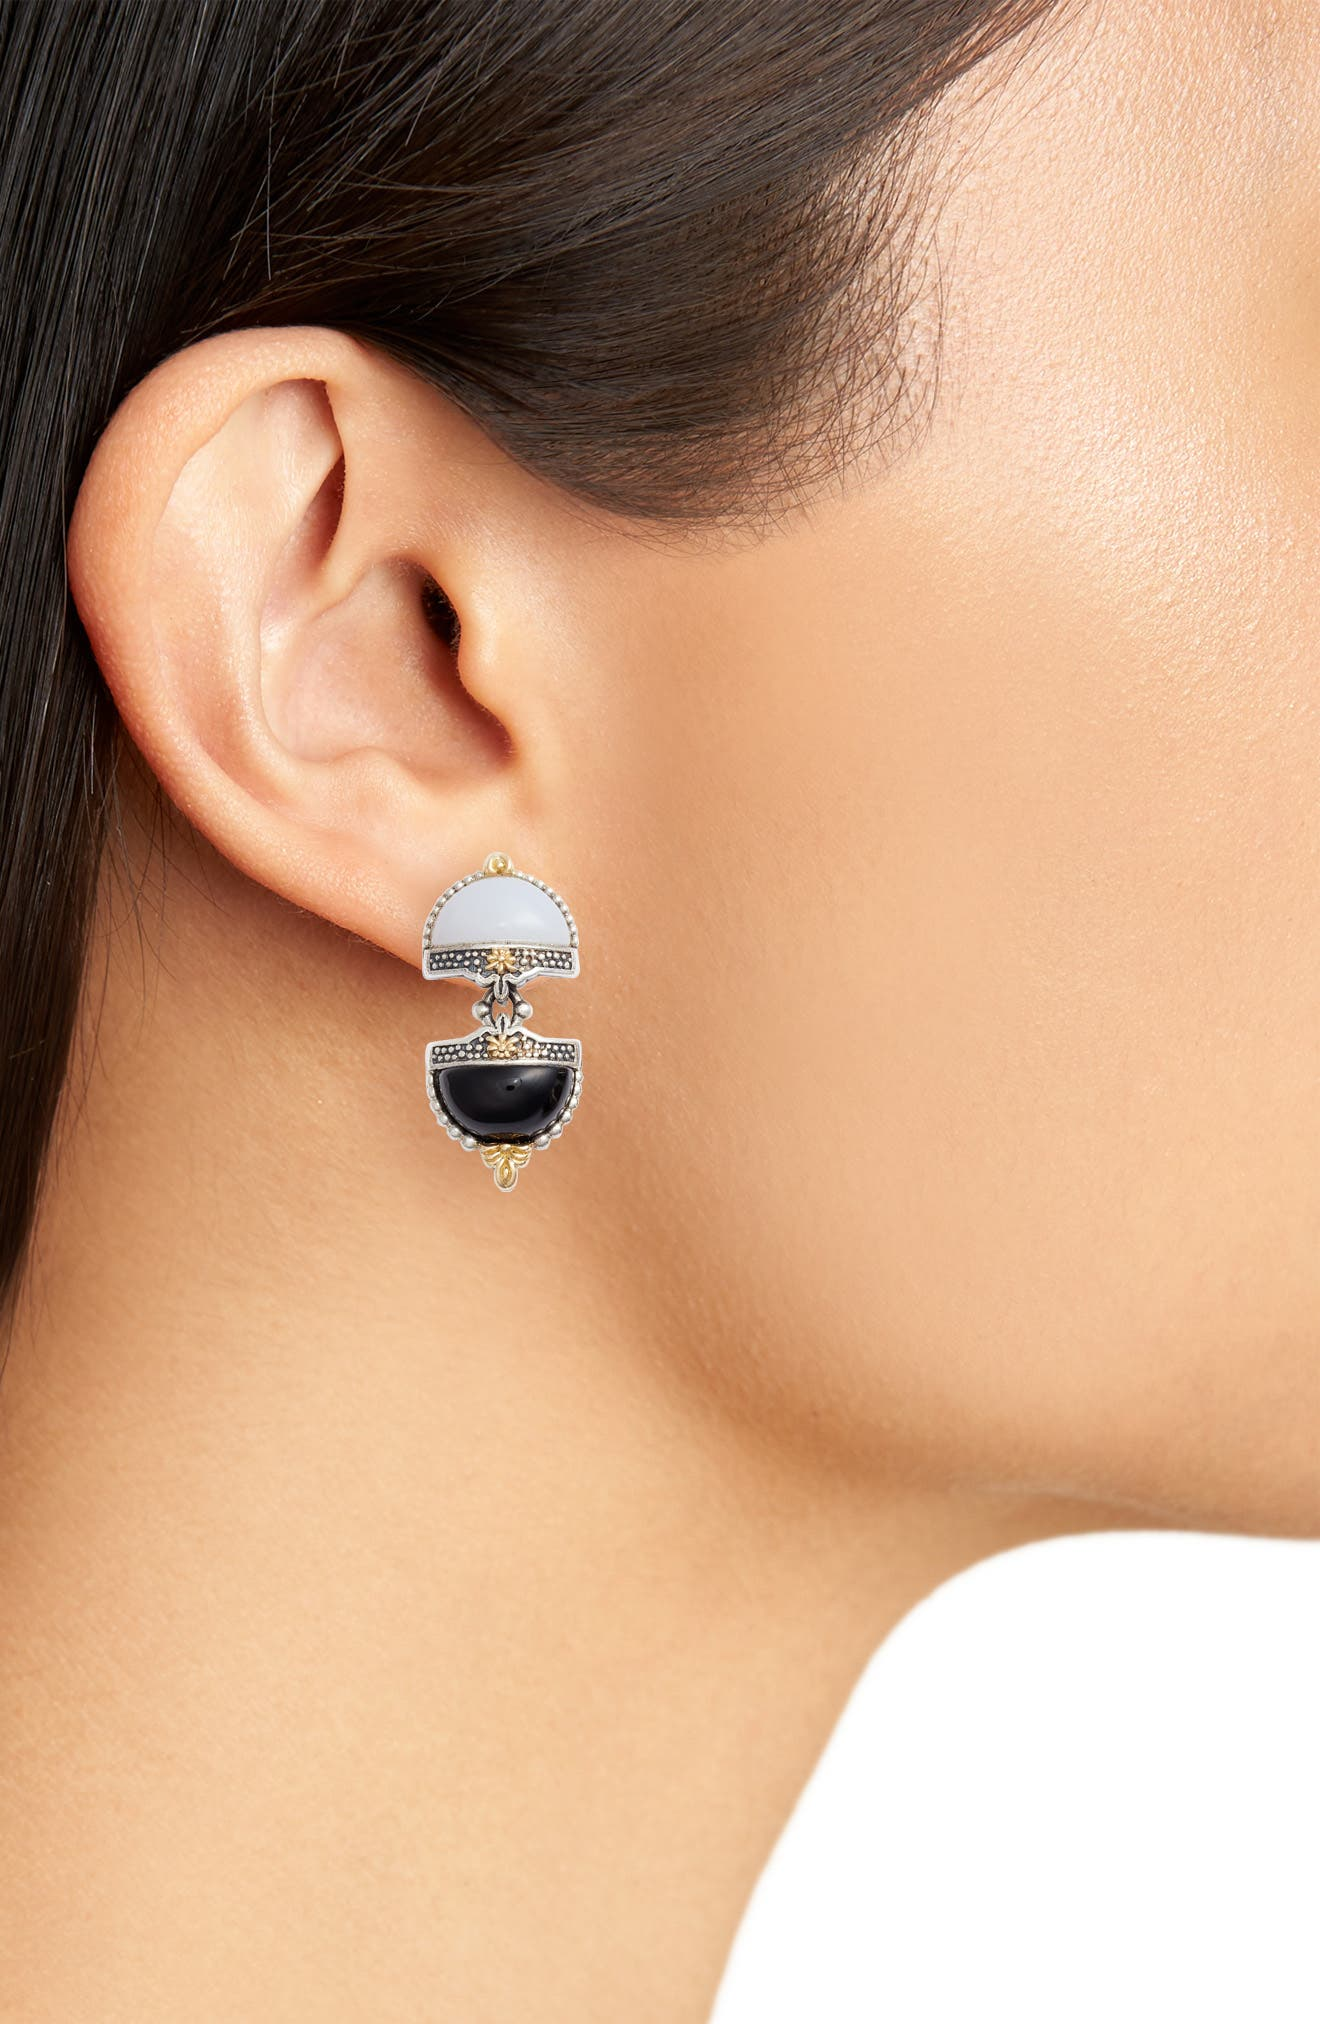 Sterling Silver & Agate Drop Earrings,                             Alternate thumbnail 2, color,                             BLACK/ WHITE/ SILVER/ GOLD